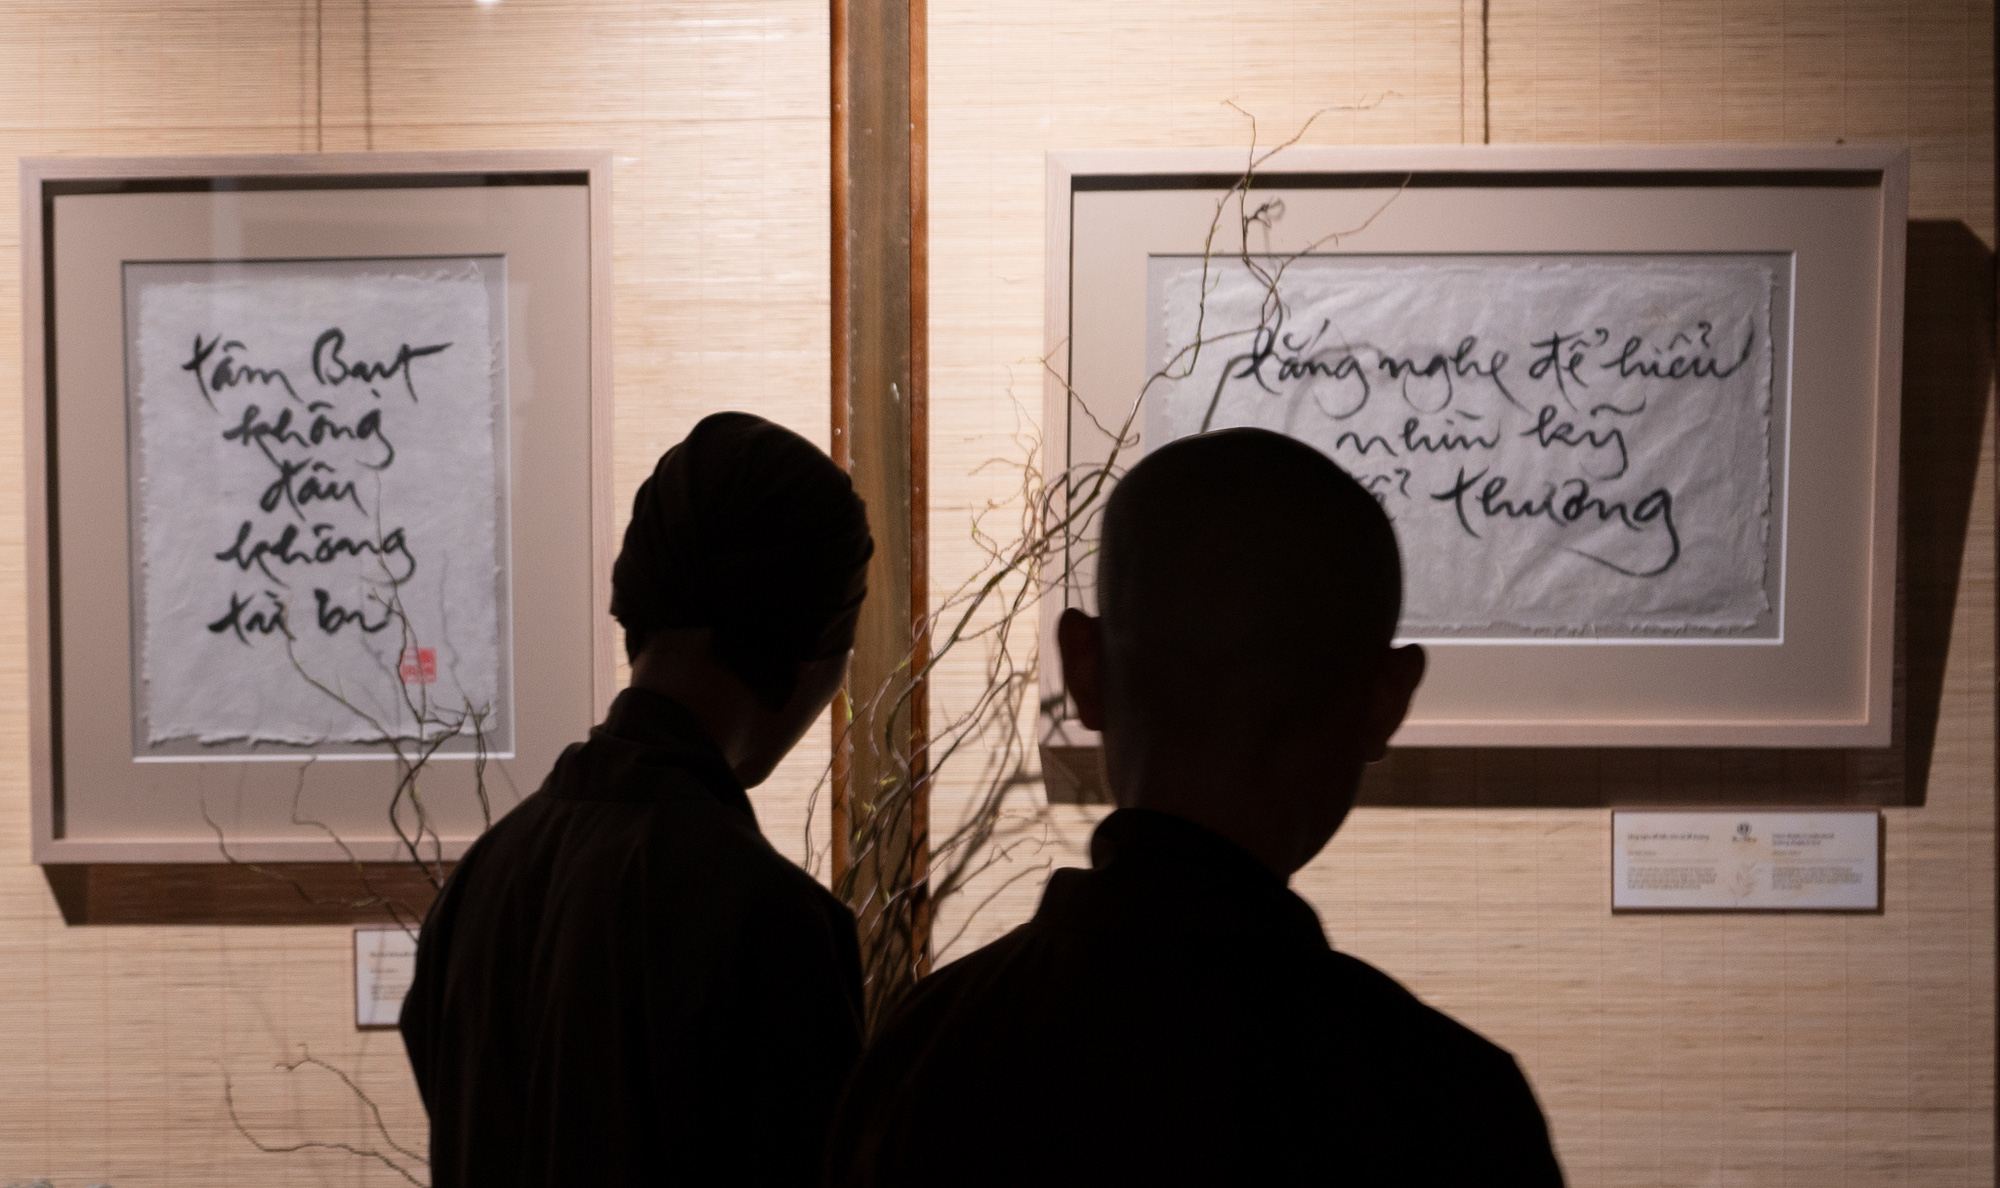 Calligraphy by Zen master Thich Nhat Hanh on display in Ho Chi Minh City